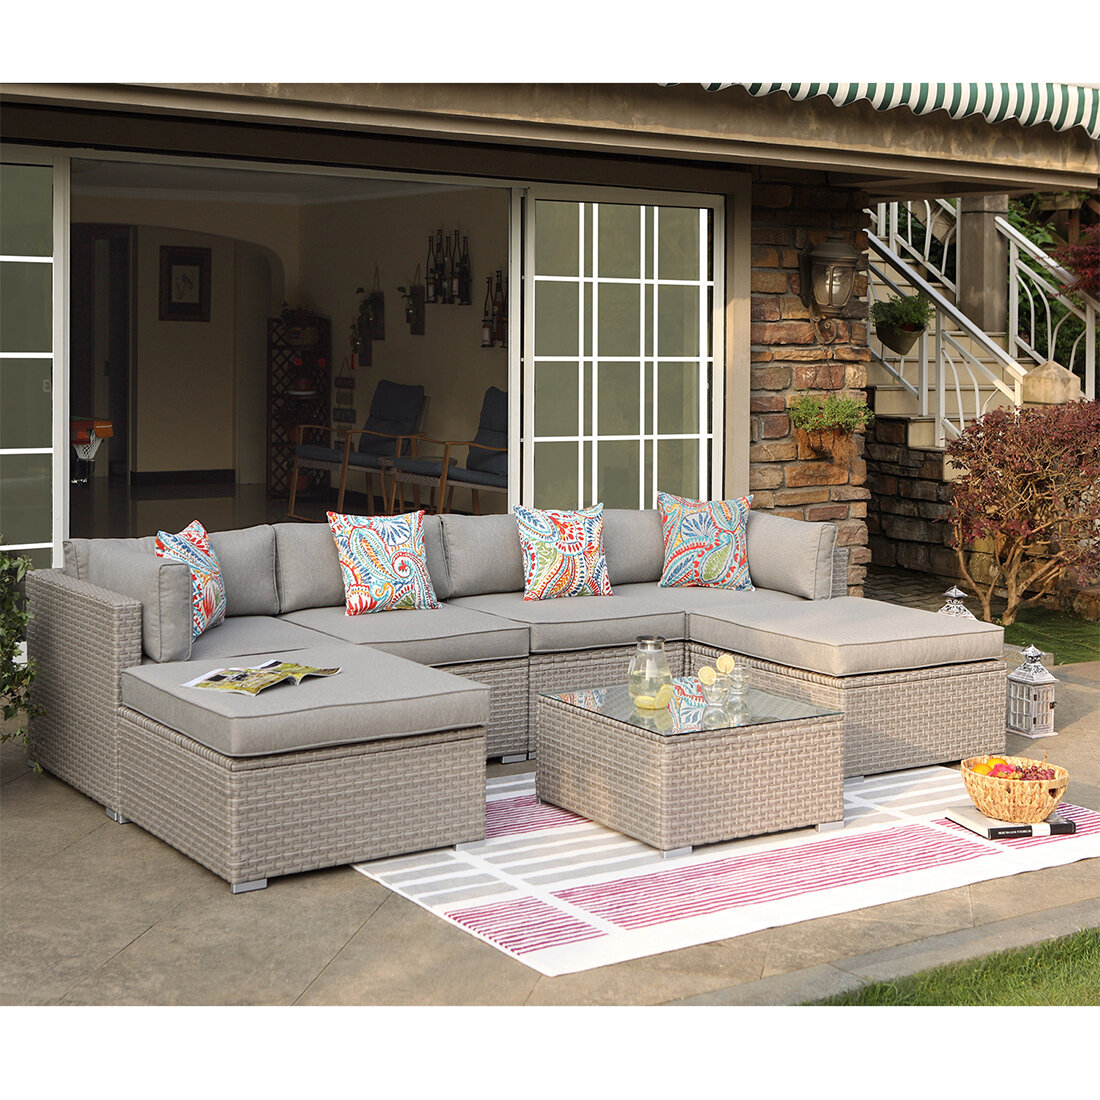 Rhinegeist 7-Piece Outdoor Furniture Warm Gray Wicker Family Sectional Sofa  W Thick Cushions, Glass Top Coffee Table, 2 Ottomans, 4 Floral Fantasy ...